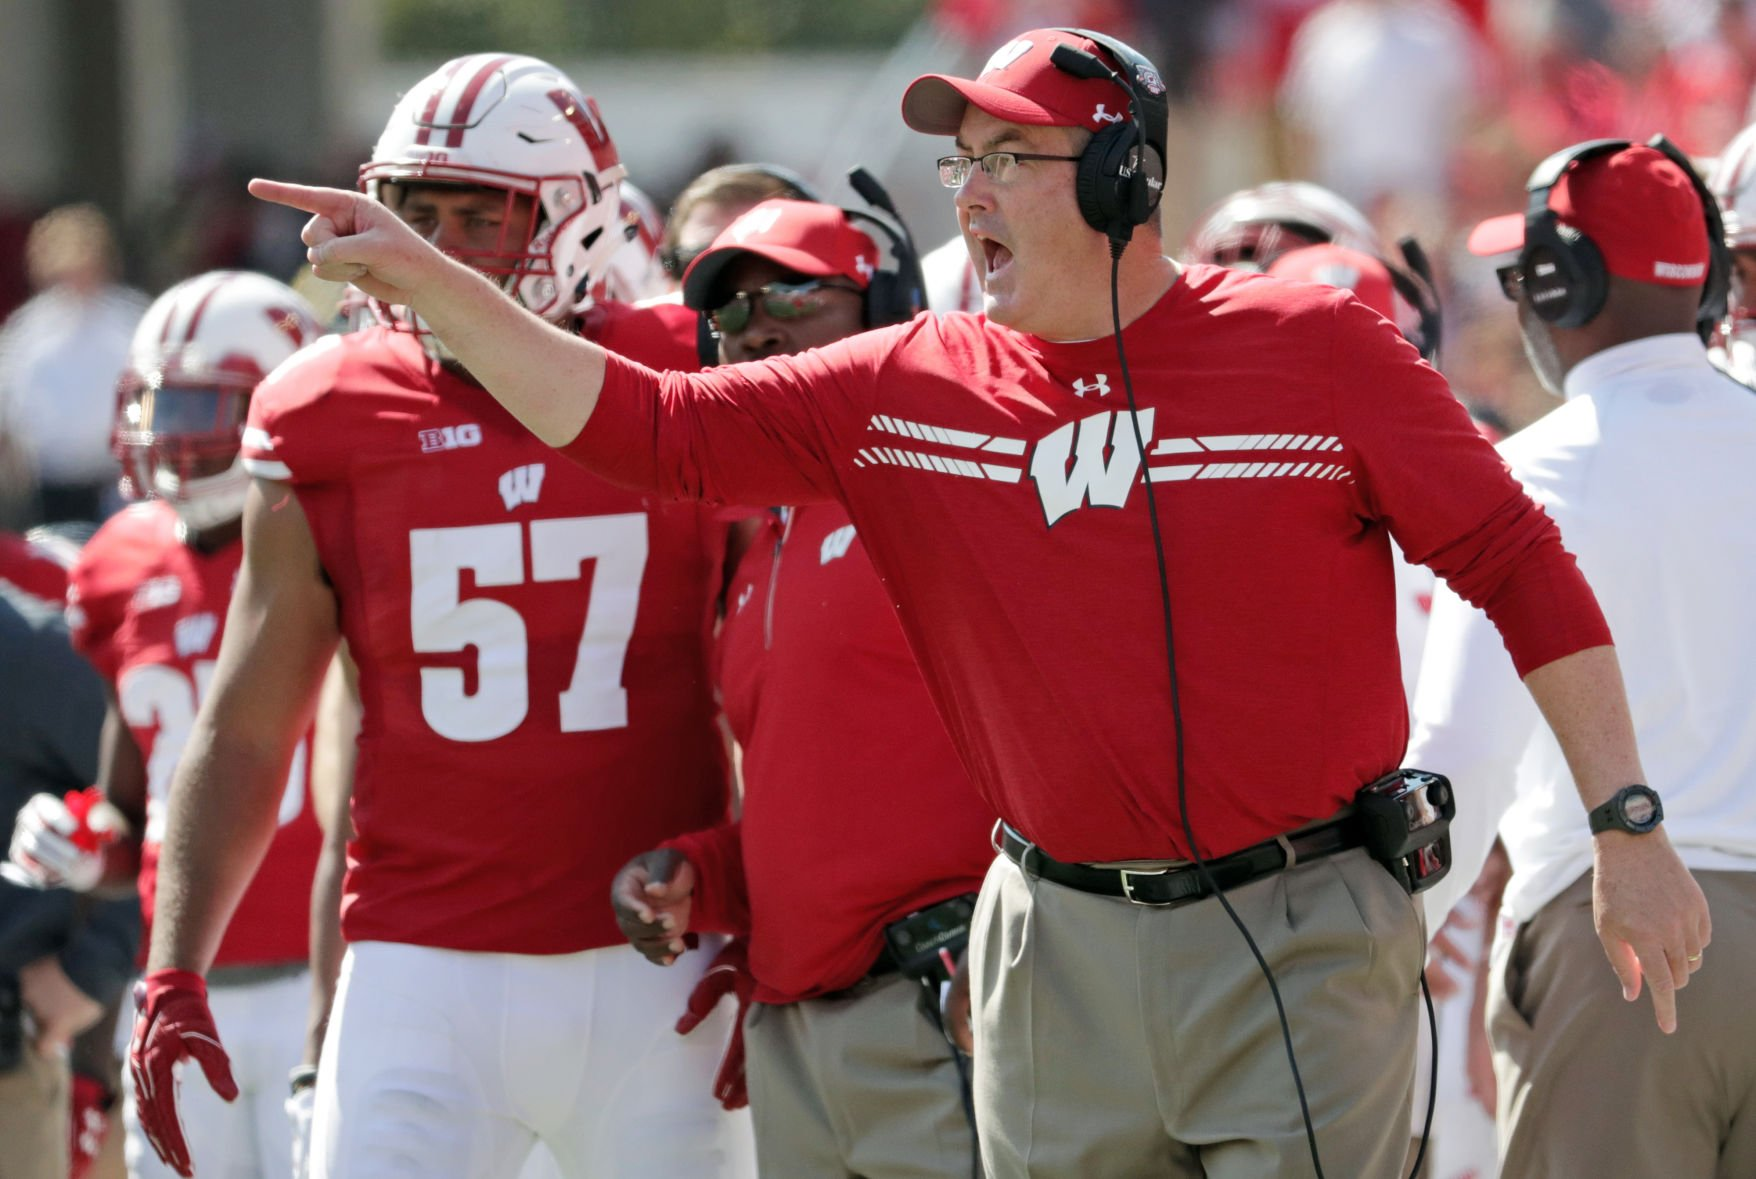 Florida Atlantic Owls at Wisconsin Badgers